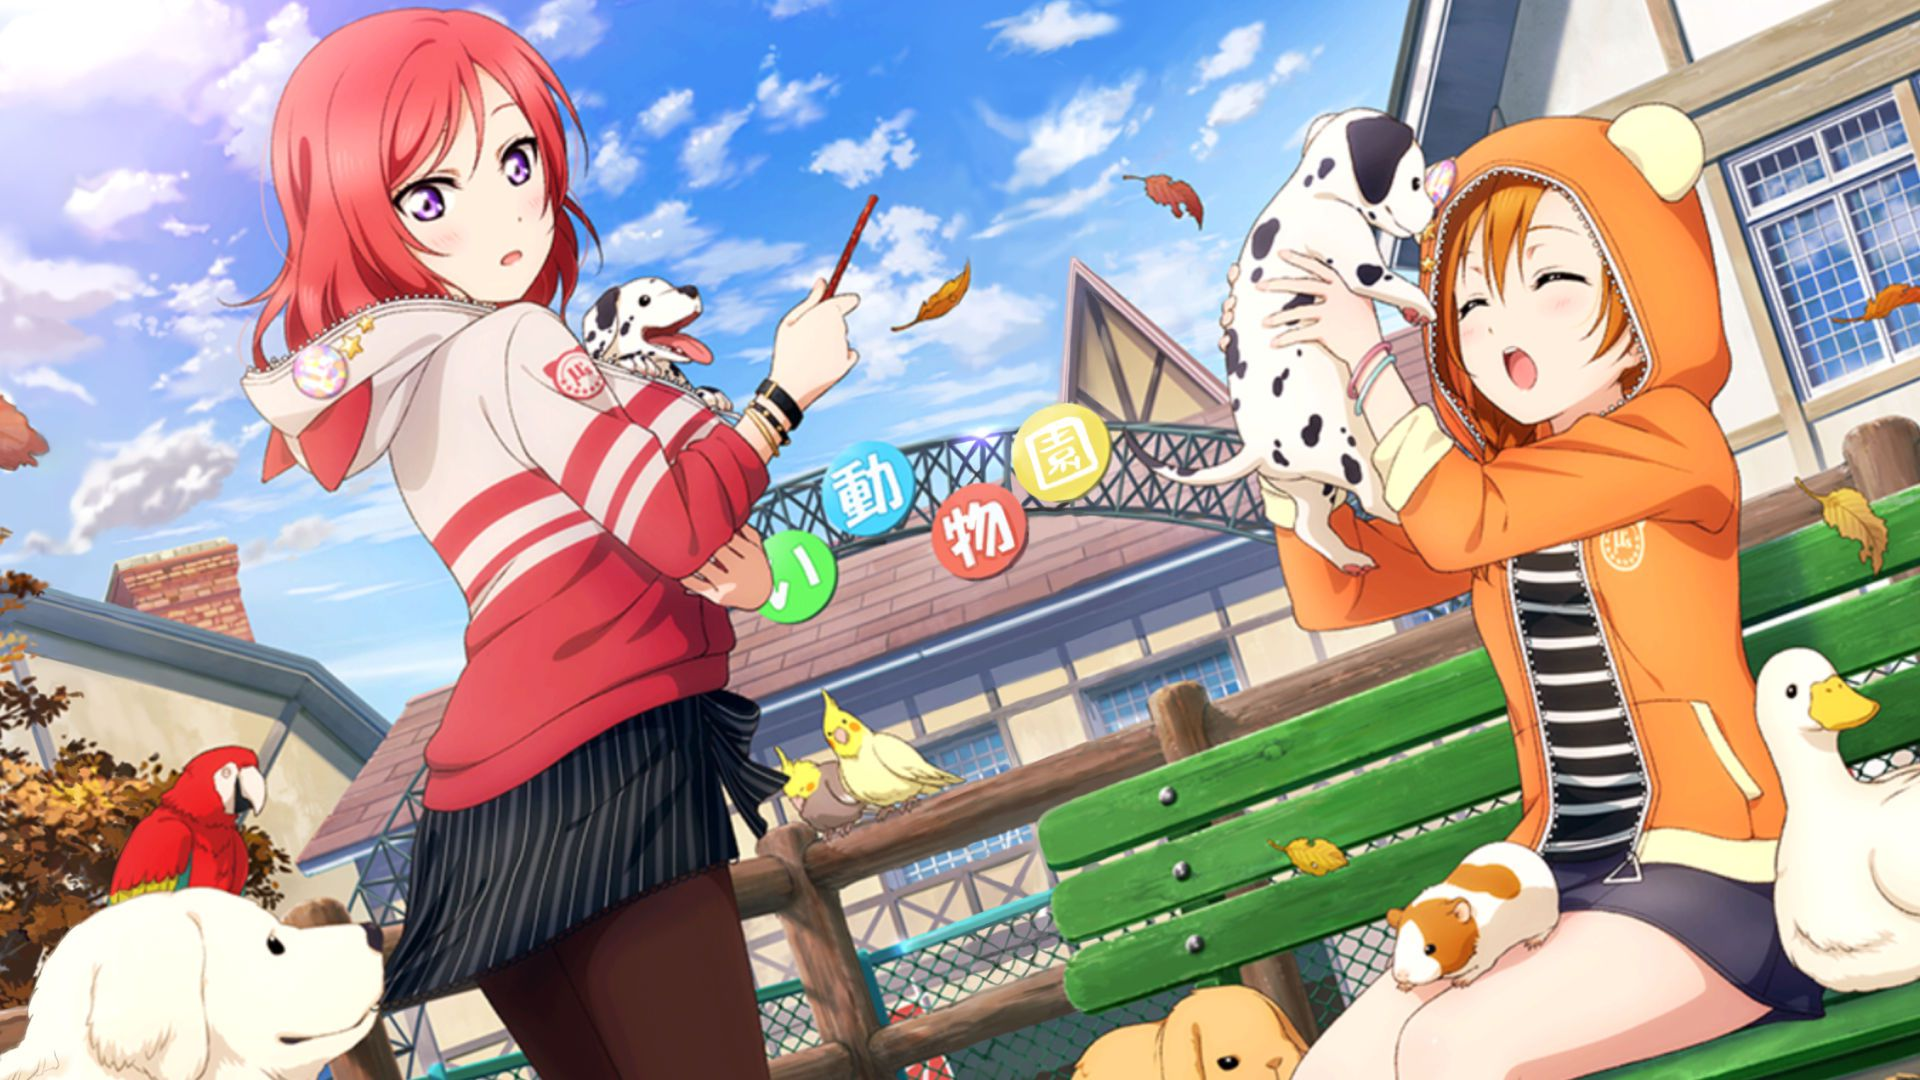 25047_lovelive_PC